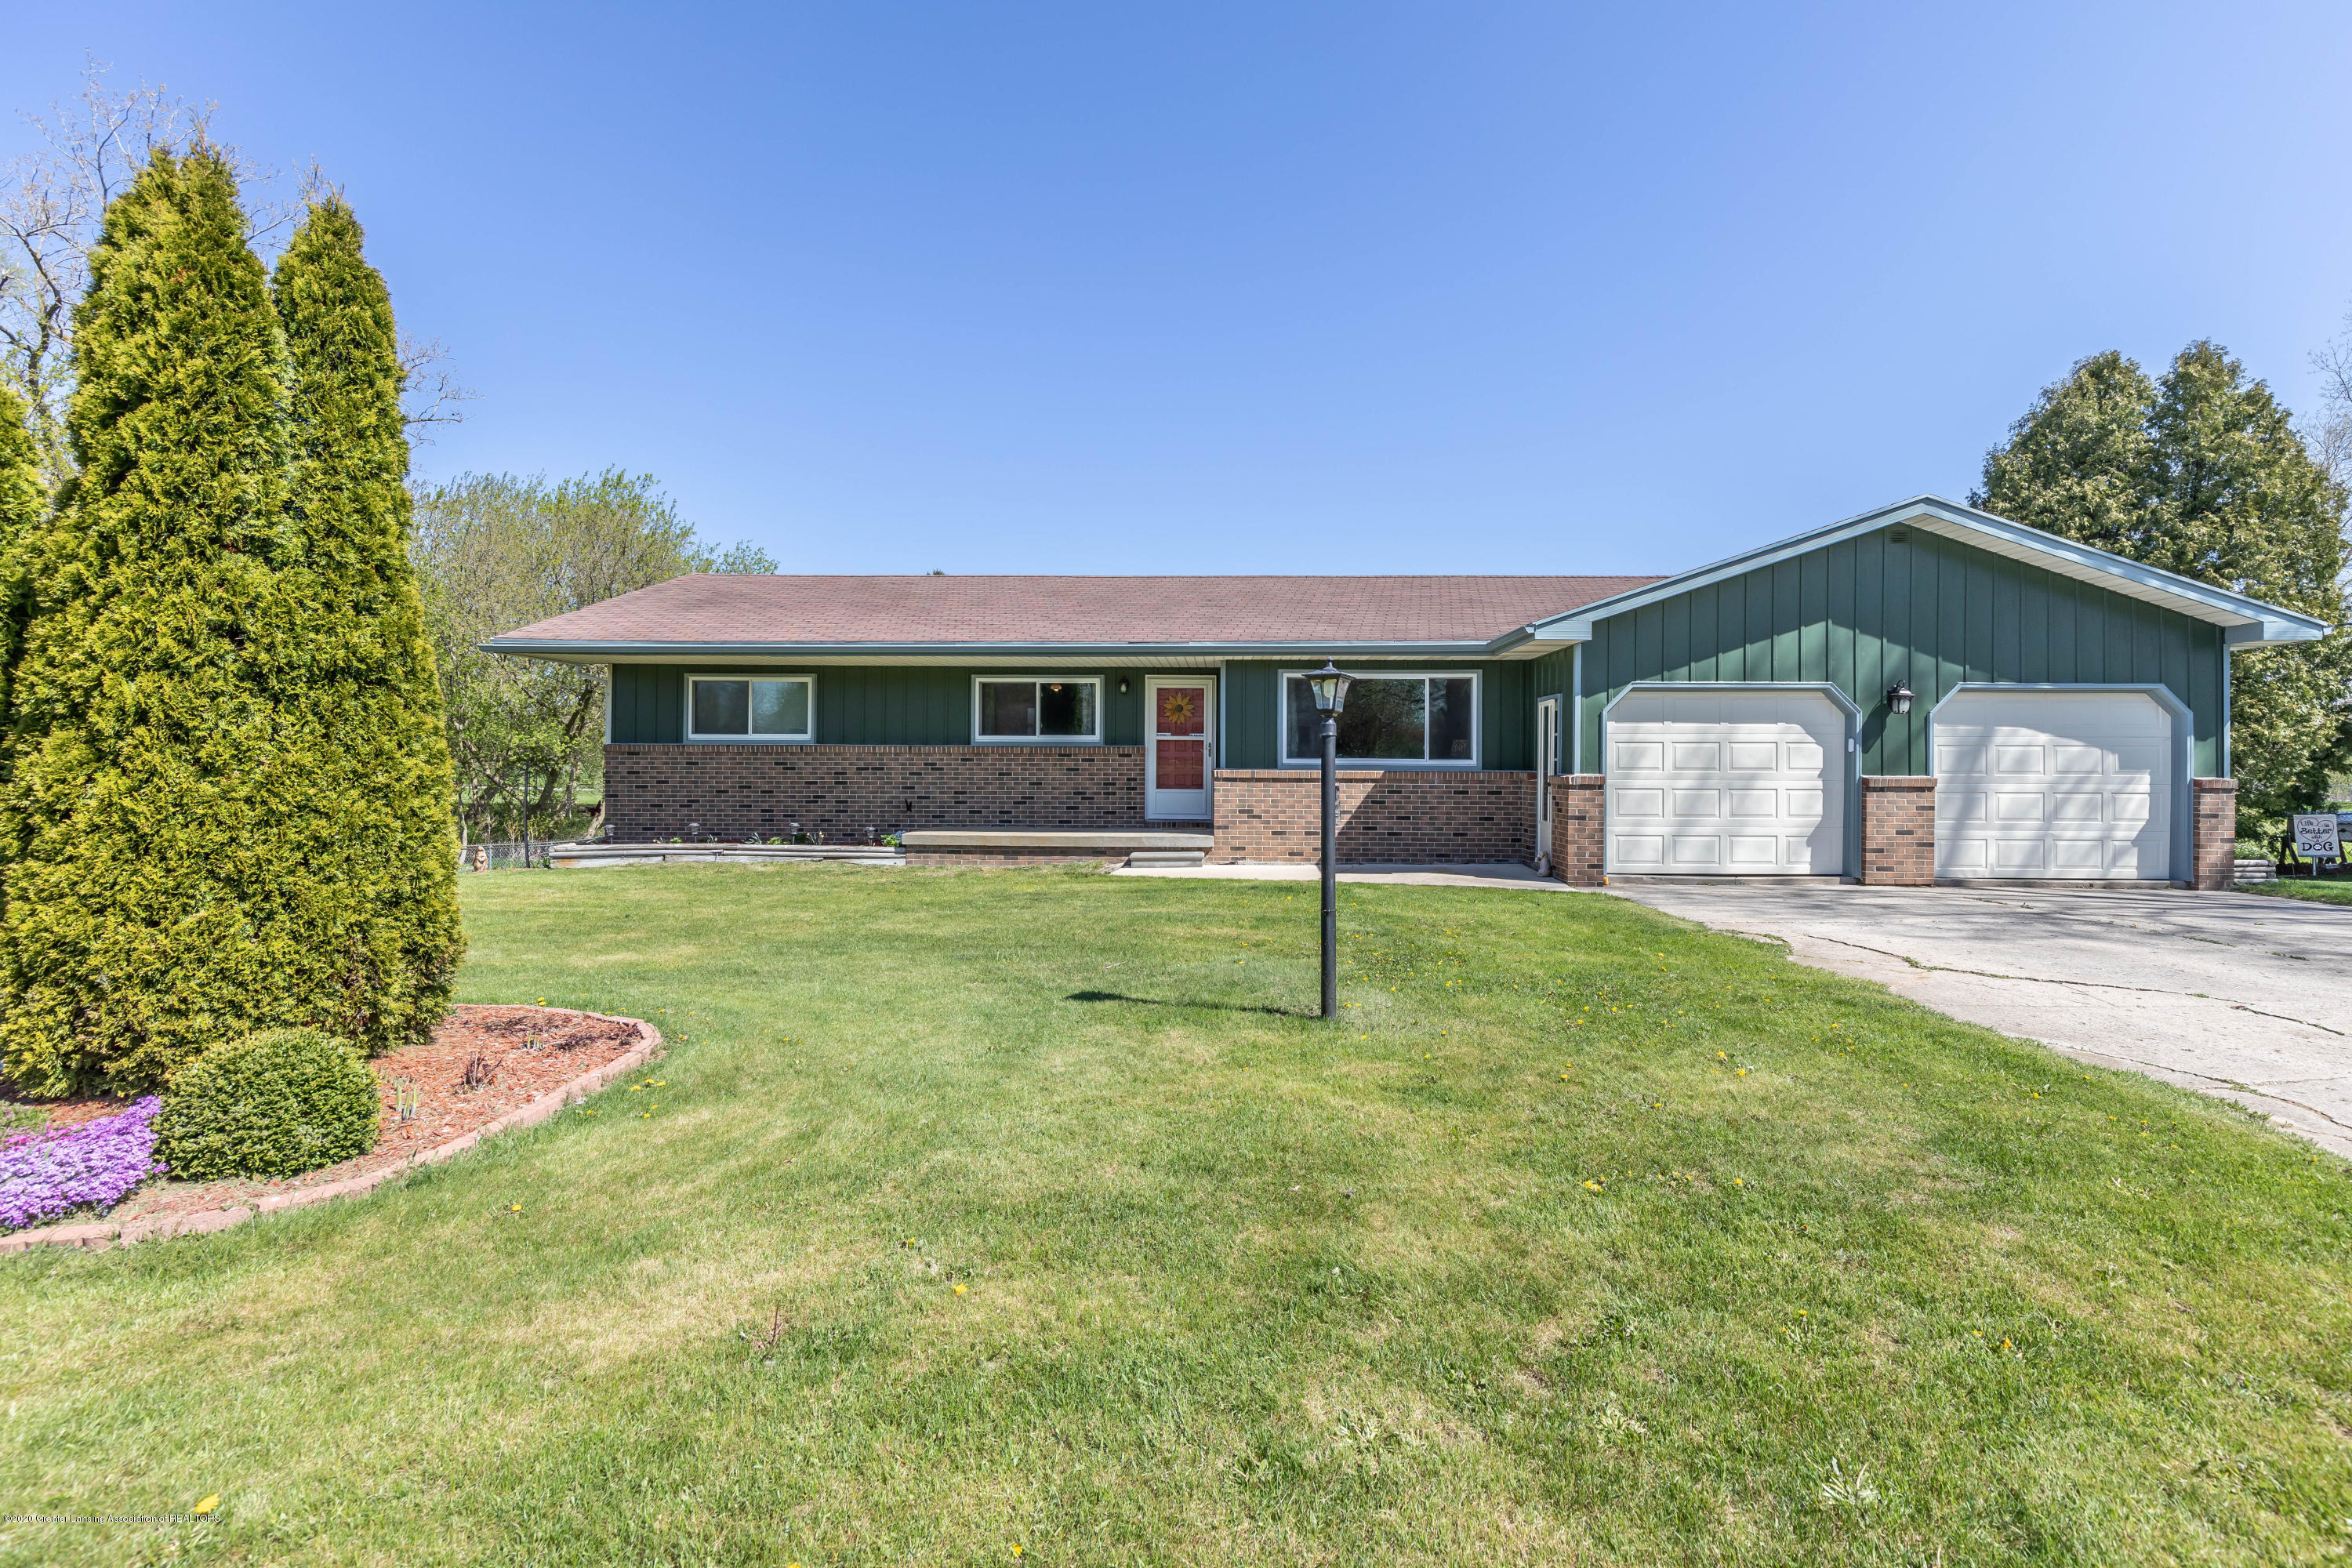 3586 W Howell Rd - howellfront2 (1 of 1) - 1